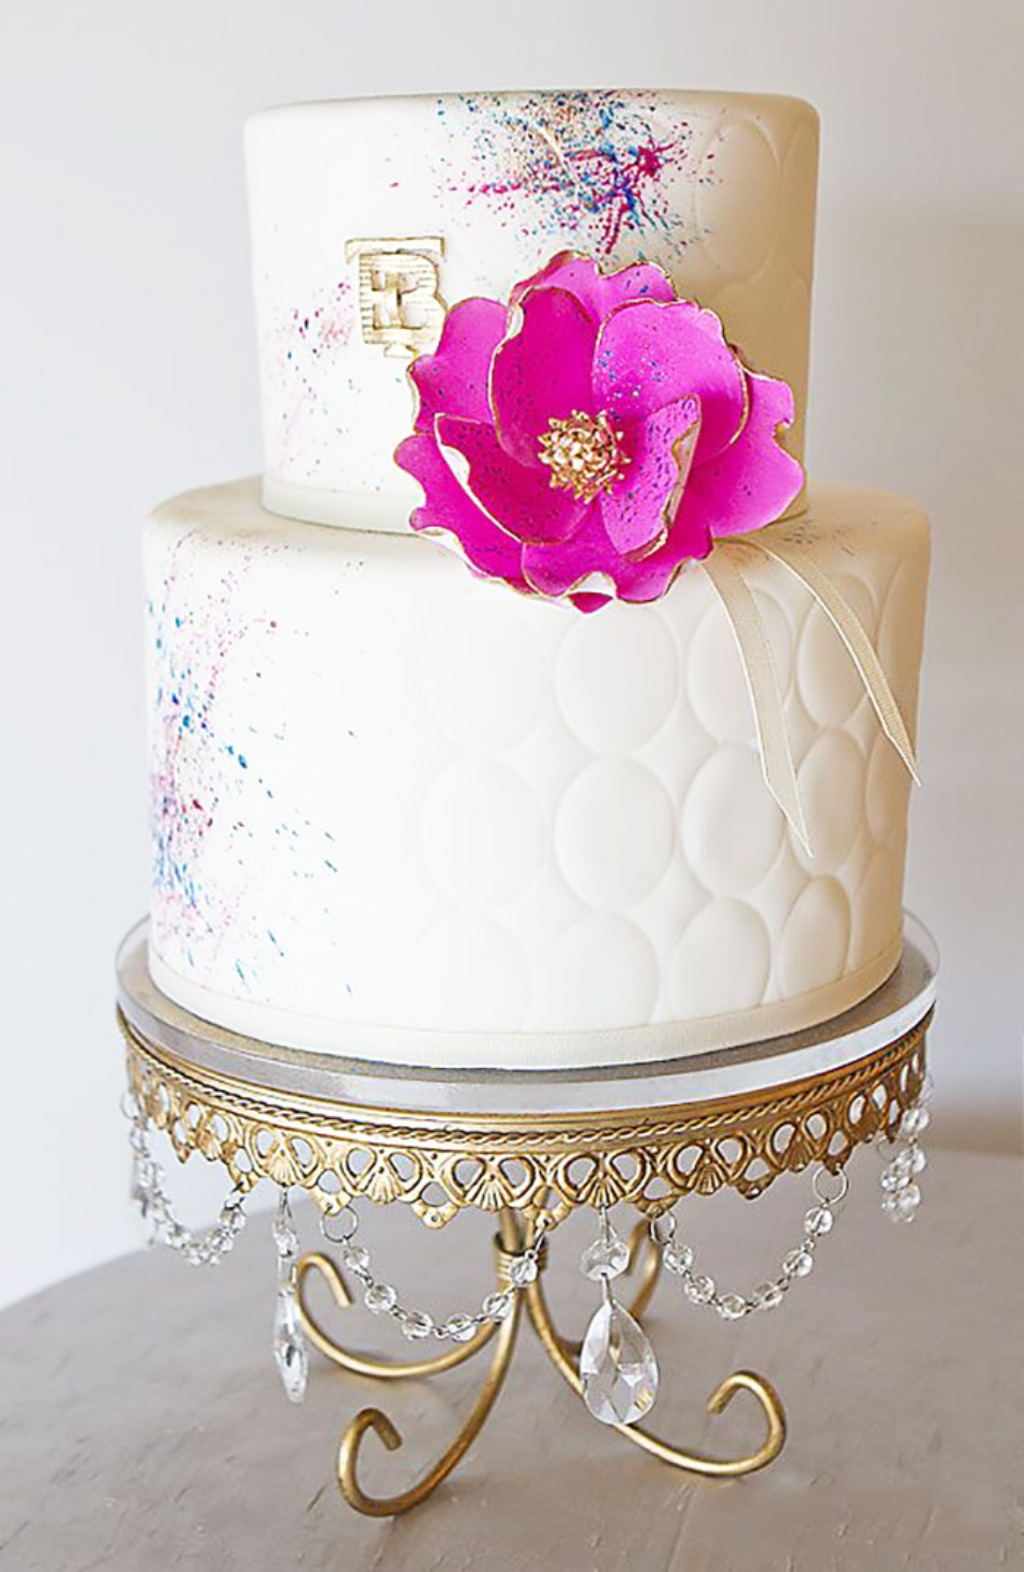 Pretty Wedding Cakes ...Wedding cake: The Pastry Studio // Antique Gold Chandelier Cake Stand: Opulent Treasures